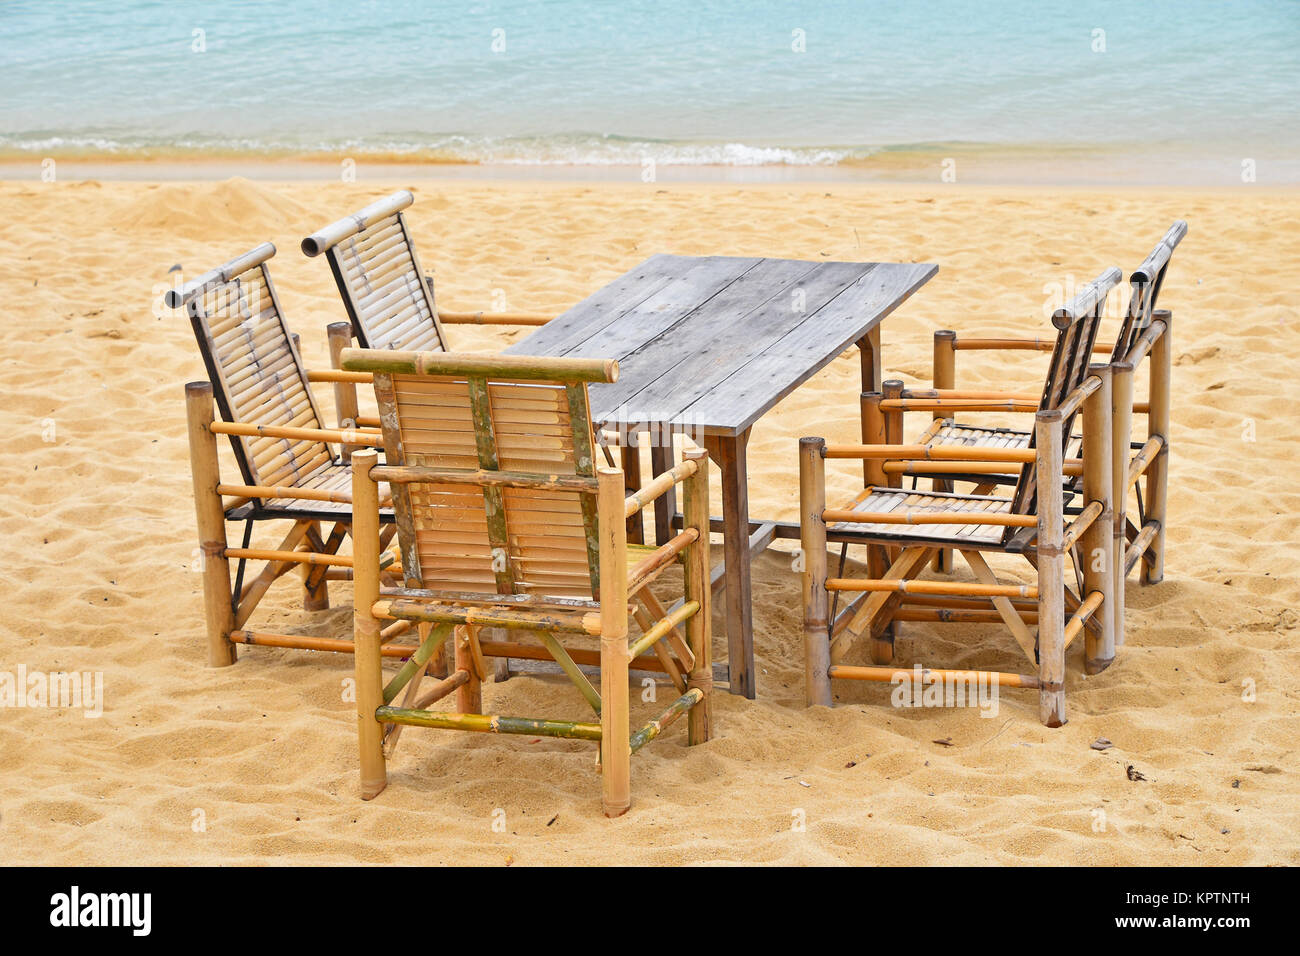 Wooden Bamboo Furniture, Table And Five Chairs Around On San Beach With  Blue Sea Water